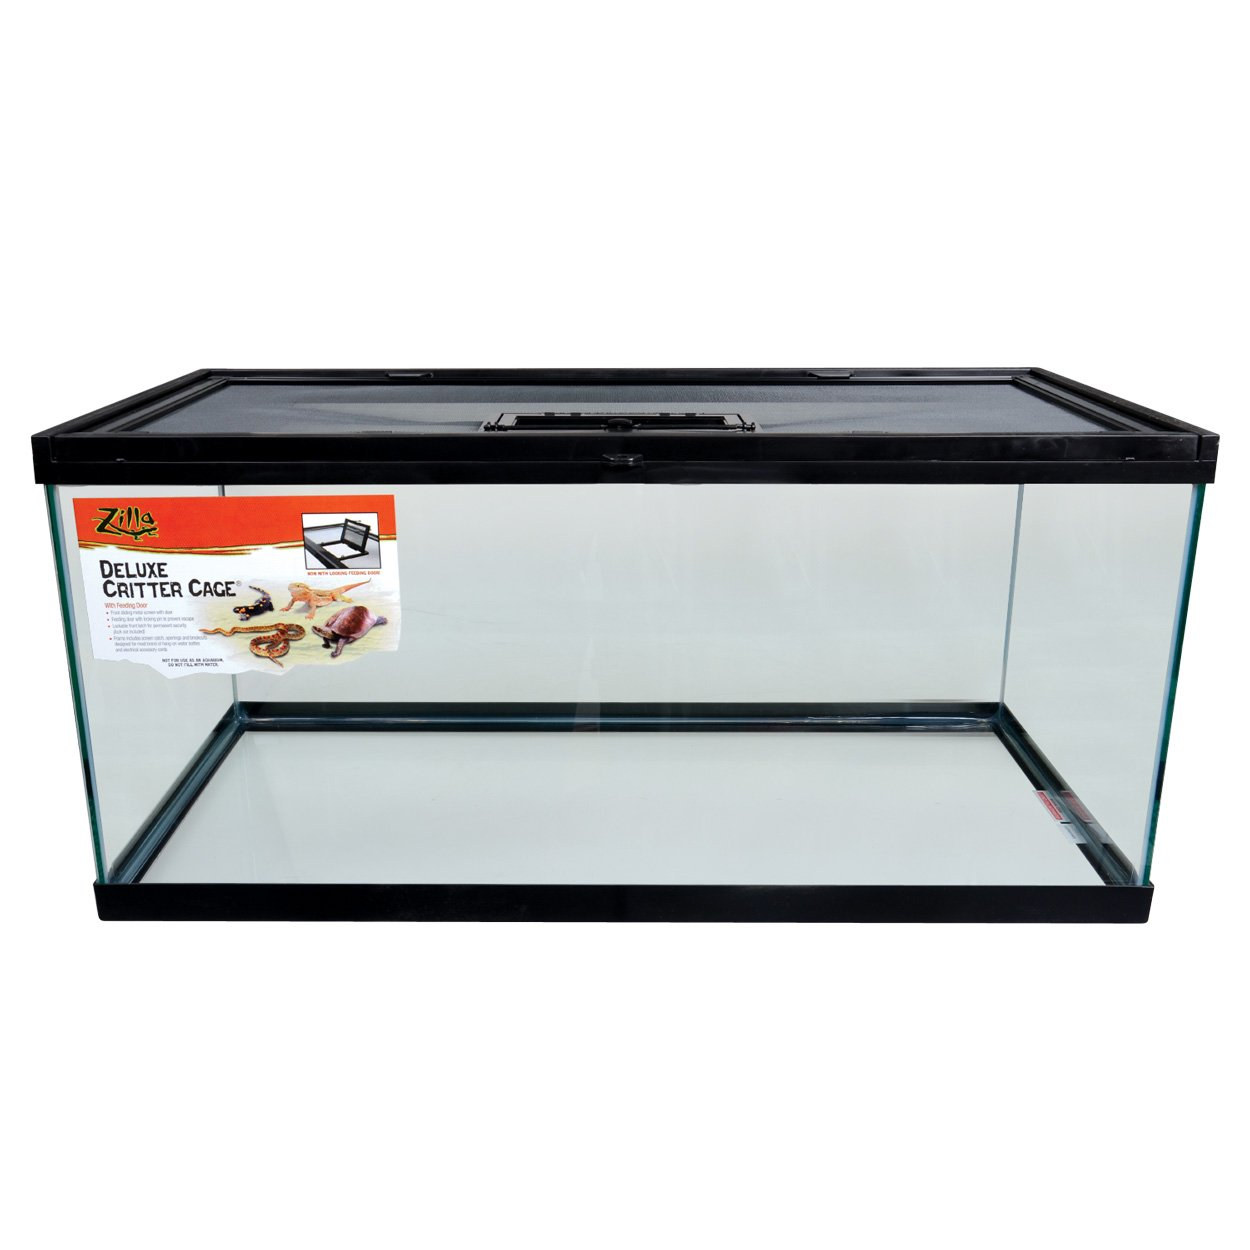 Zilla 13288 Deluxe Critter Cage with Feeding Door, 40 gallon